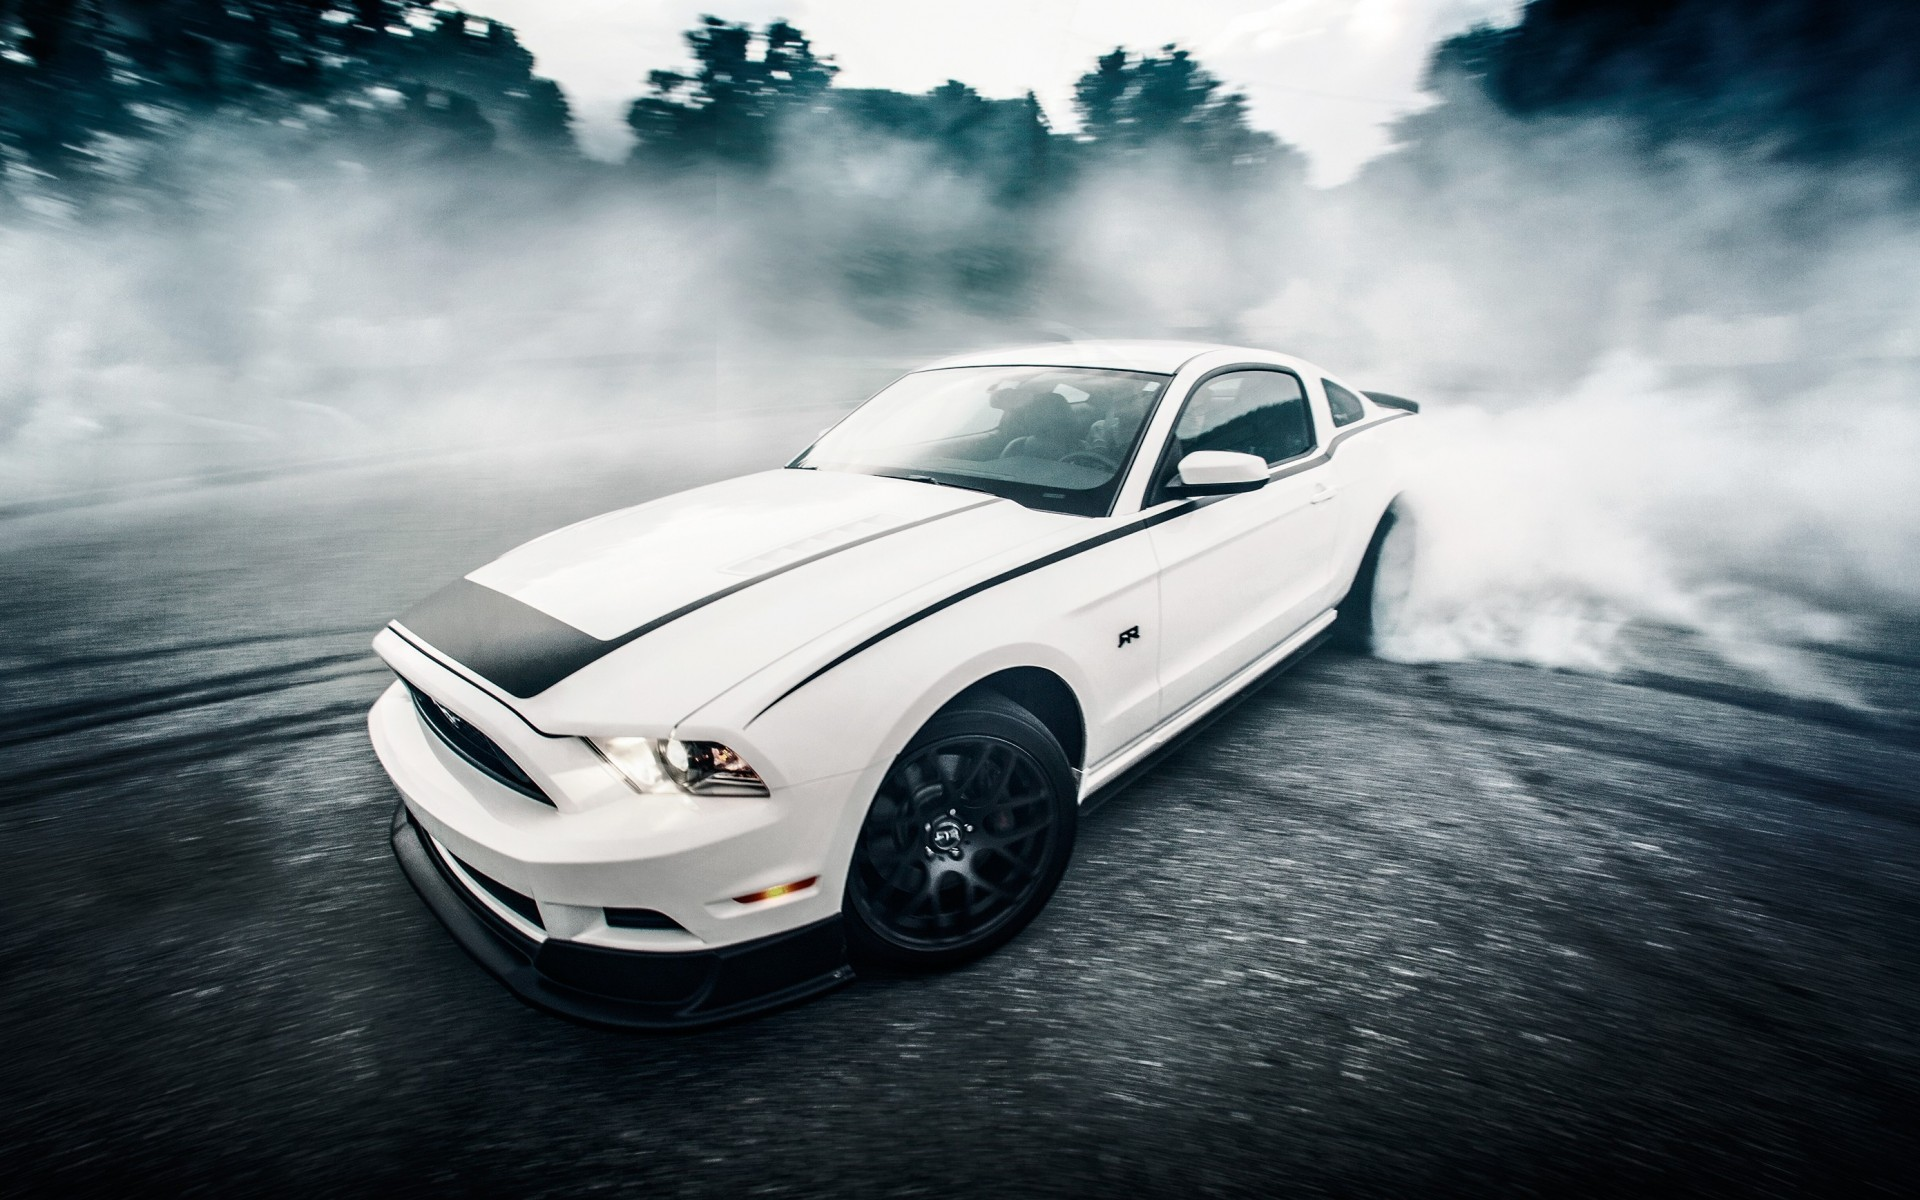 Muscle Car Ford Mustang Drifting Wallpaper